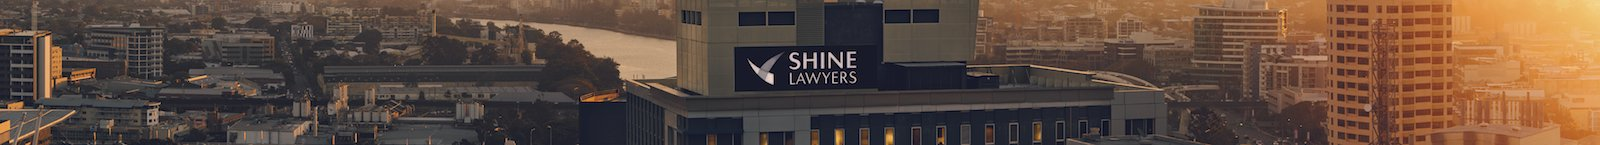 Compensation at Shine Lawyers